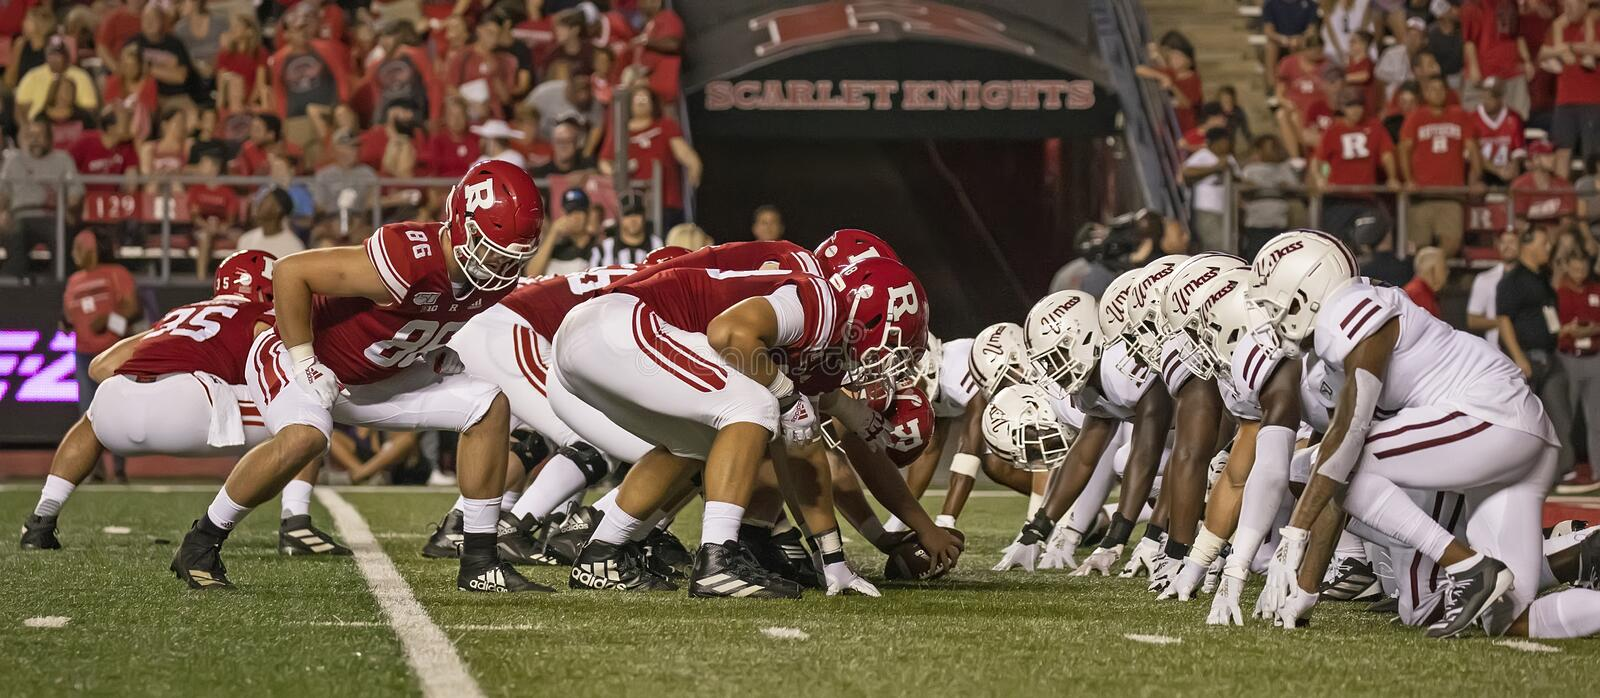 Rutgers Celebrates 150 Years of Intercollegiate Football. Line of scrimmage ground view as Rutgers prepares to kick an extra point after touchdown.  against the royalty free stock photo